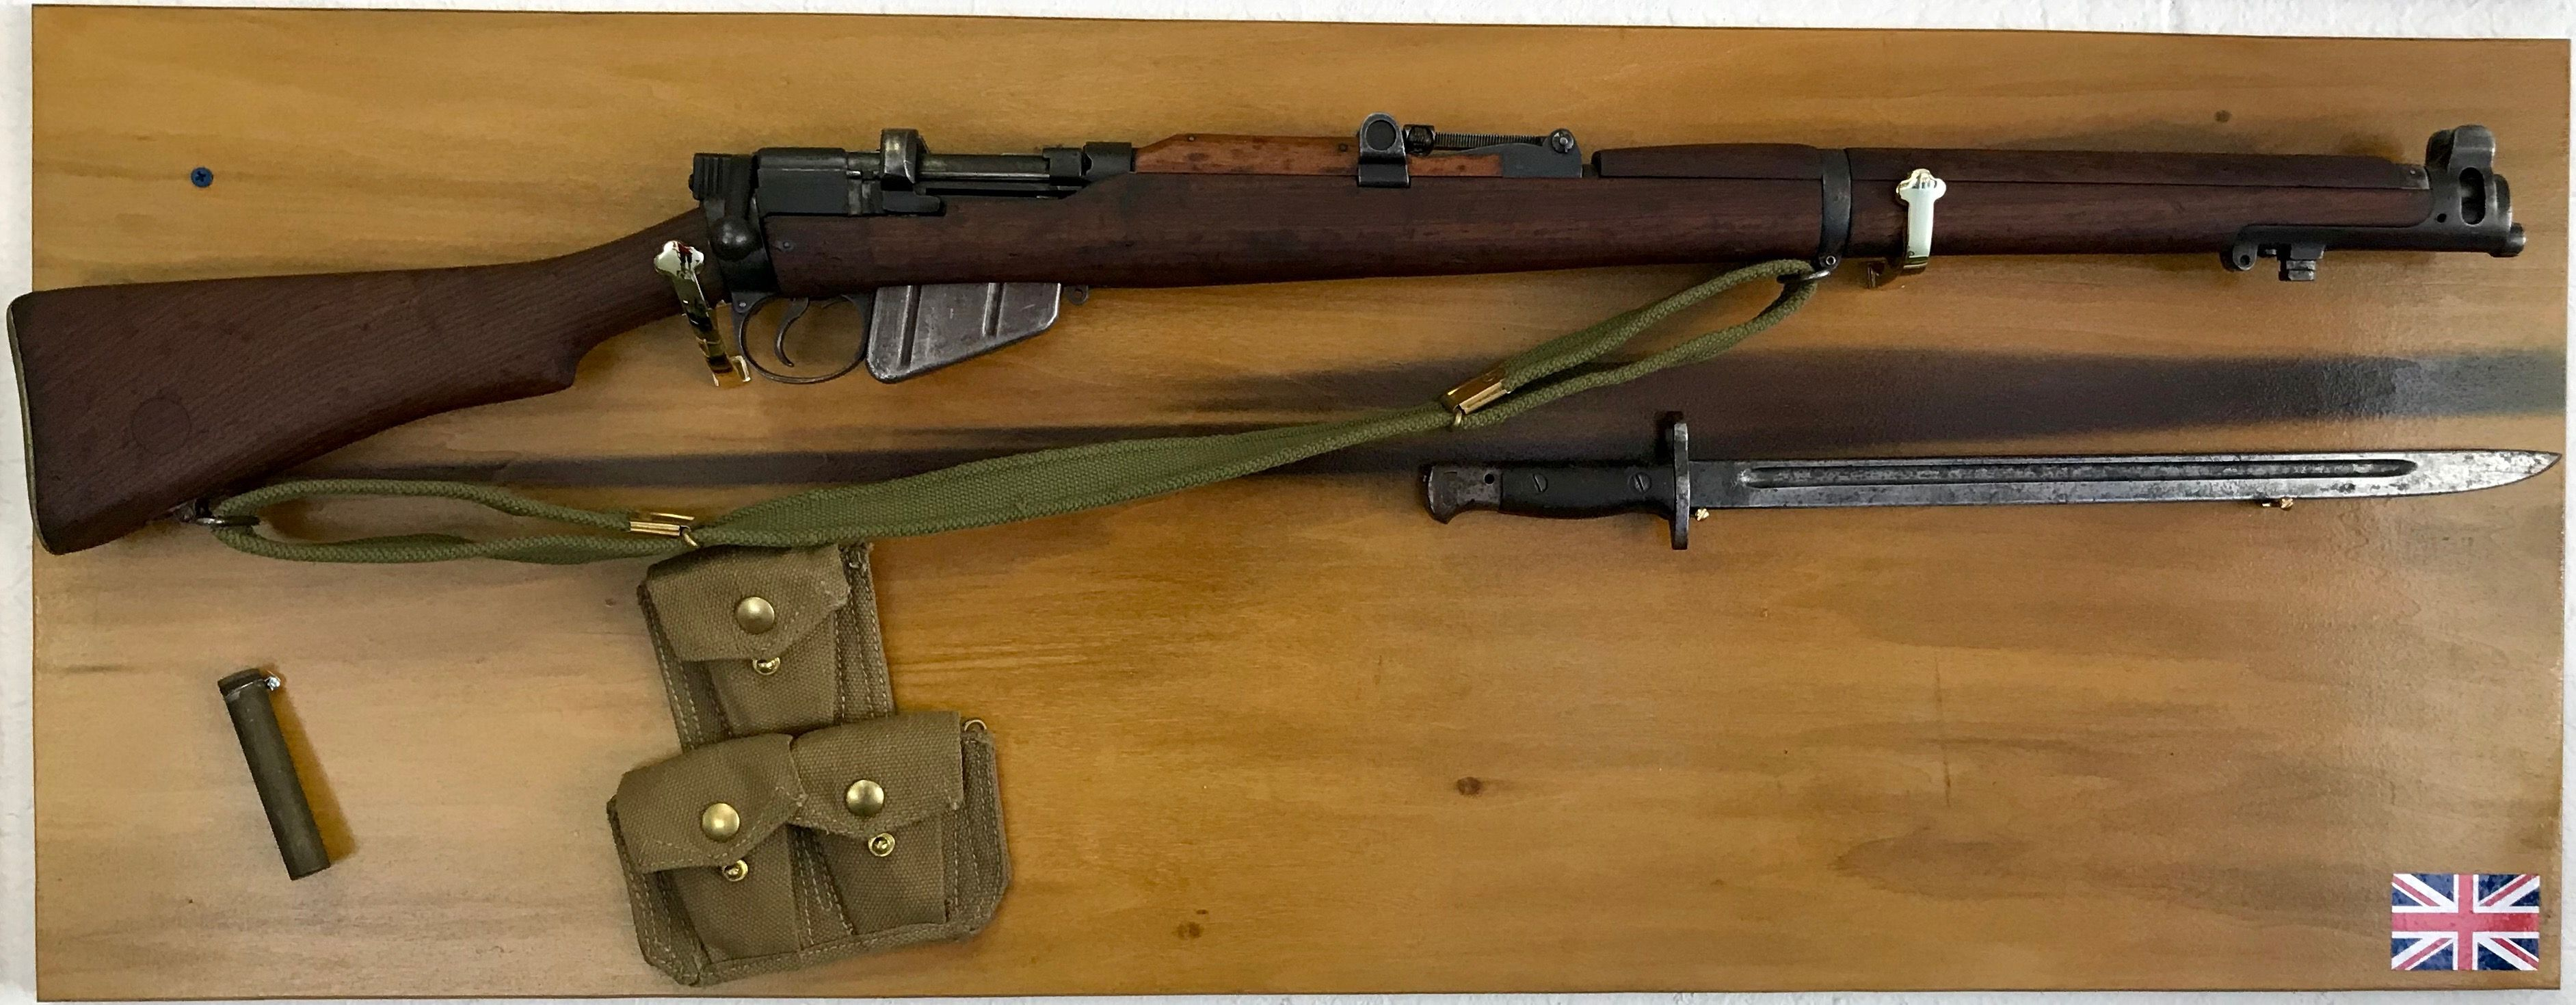 British Lee Enfield No 1 Mk III - WWII Rifle - Ammo:  303